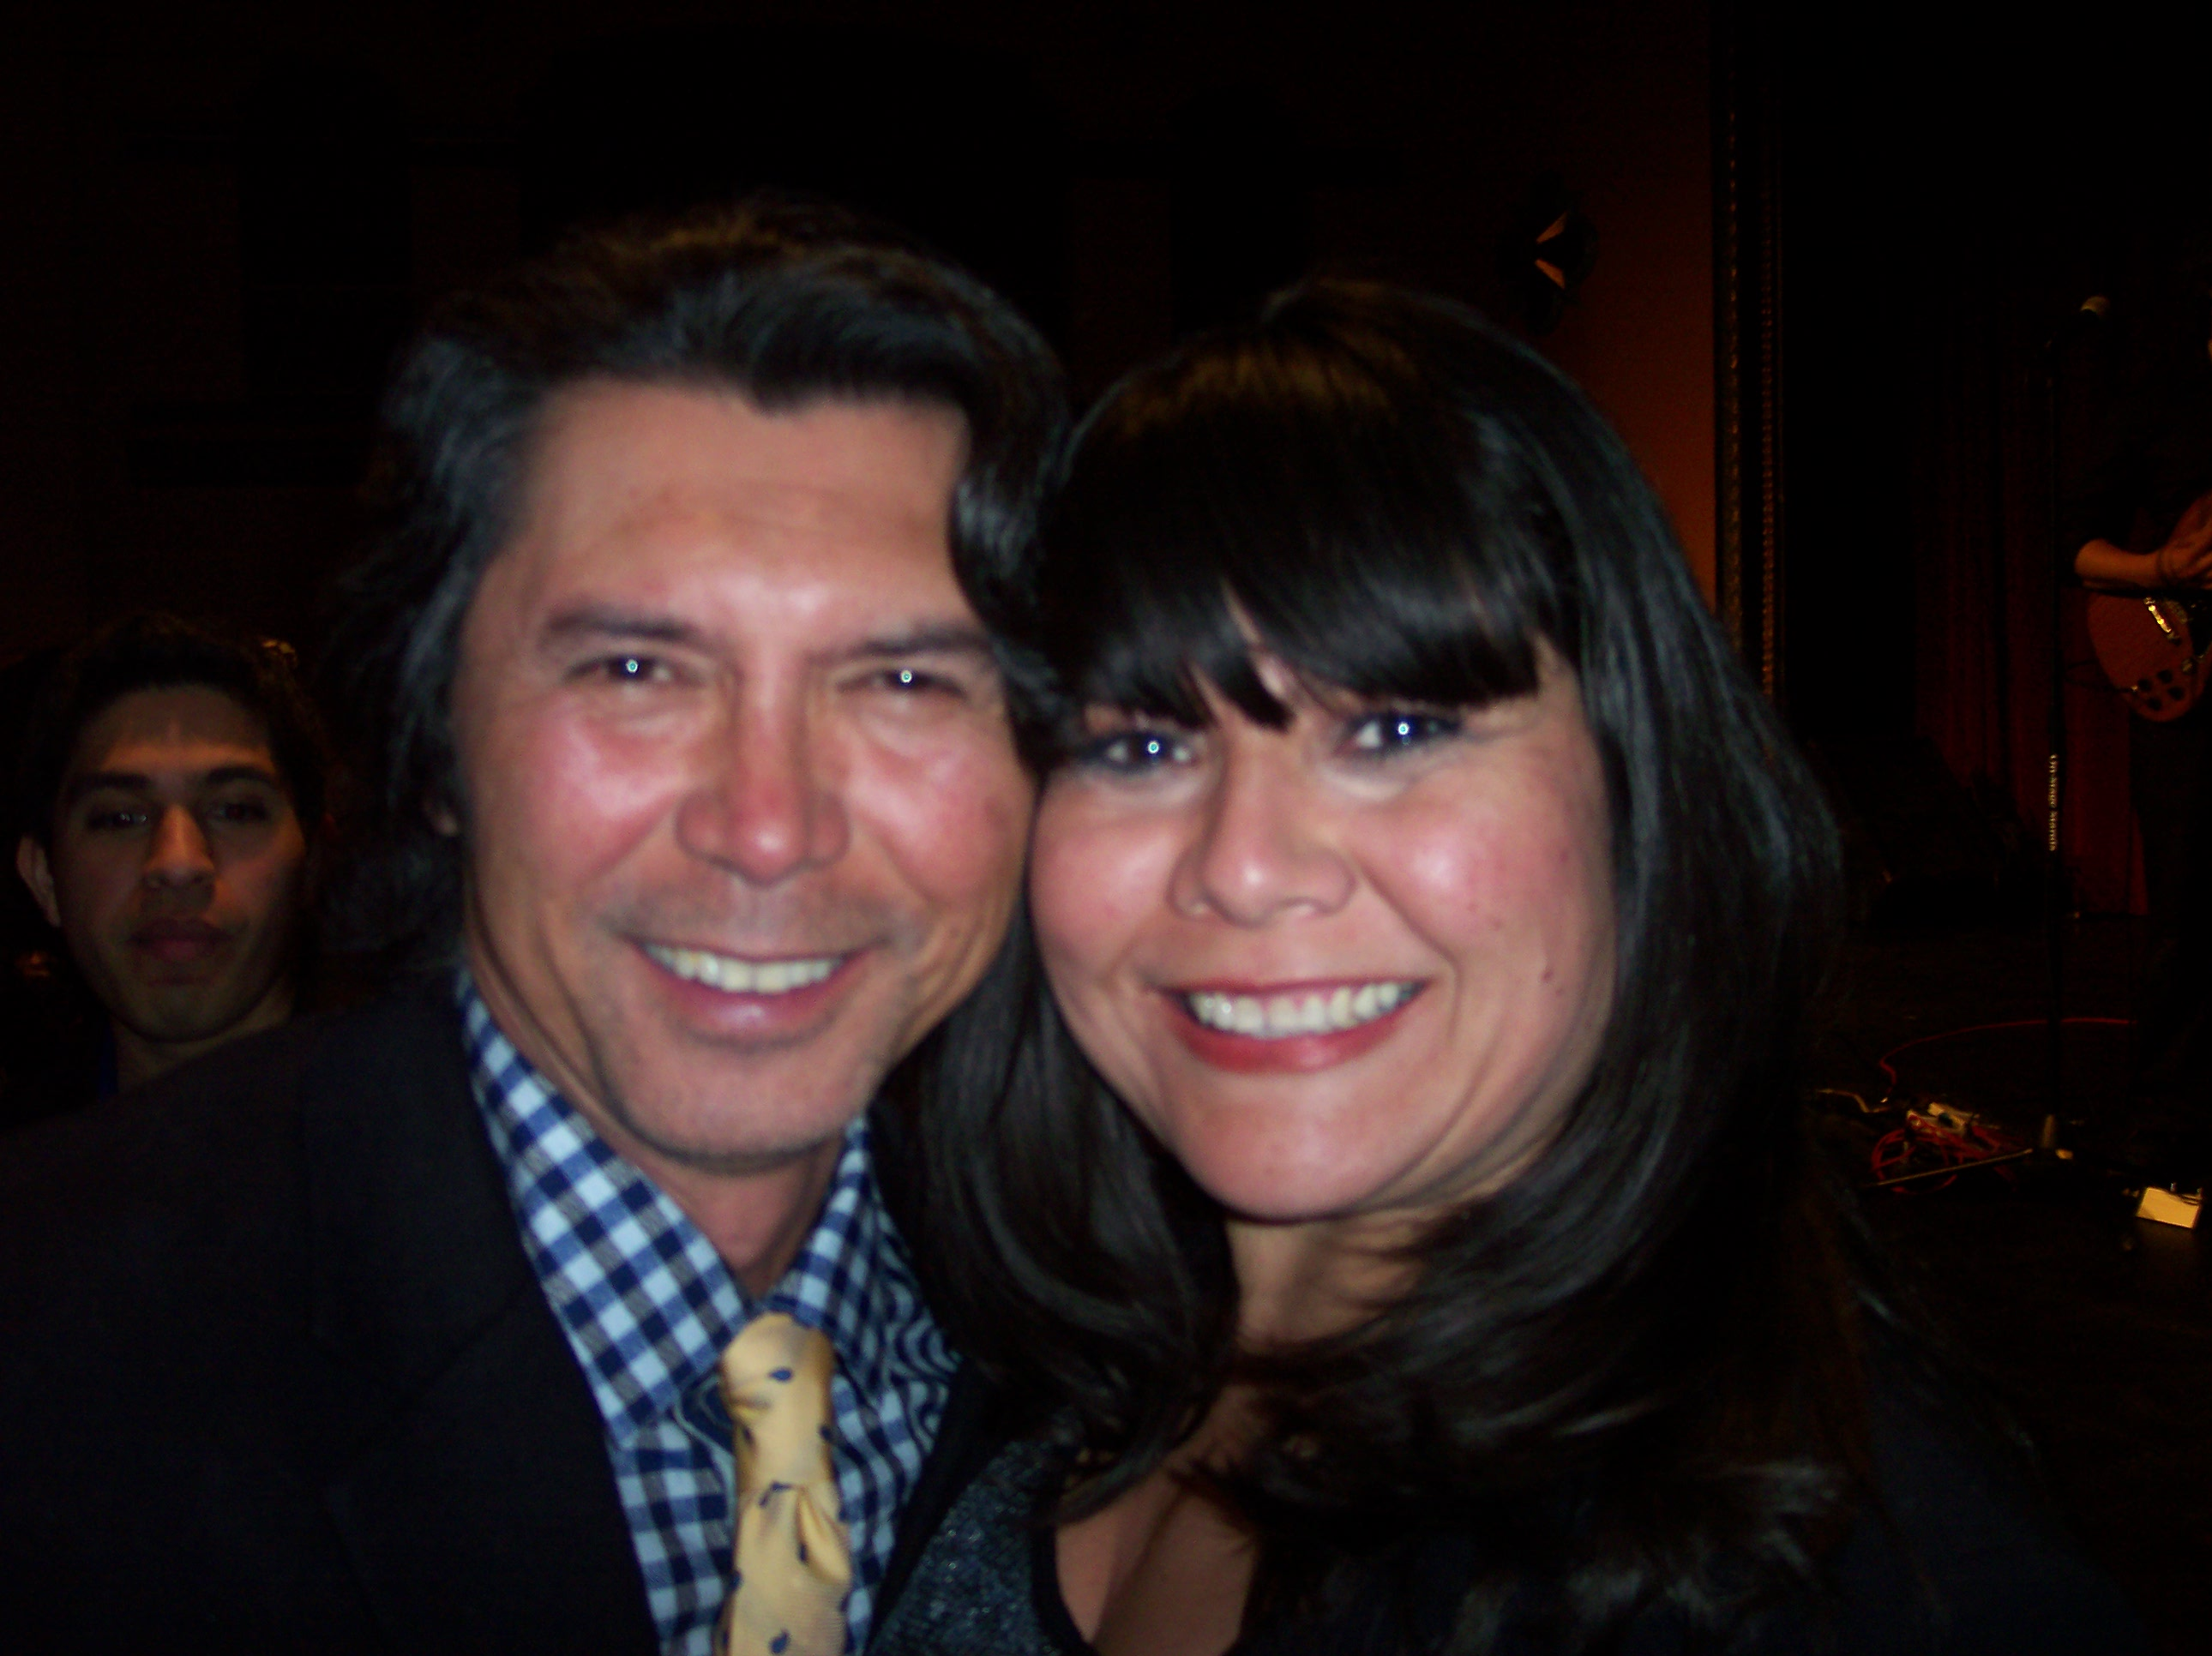 Lou Diamond Phillips and I